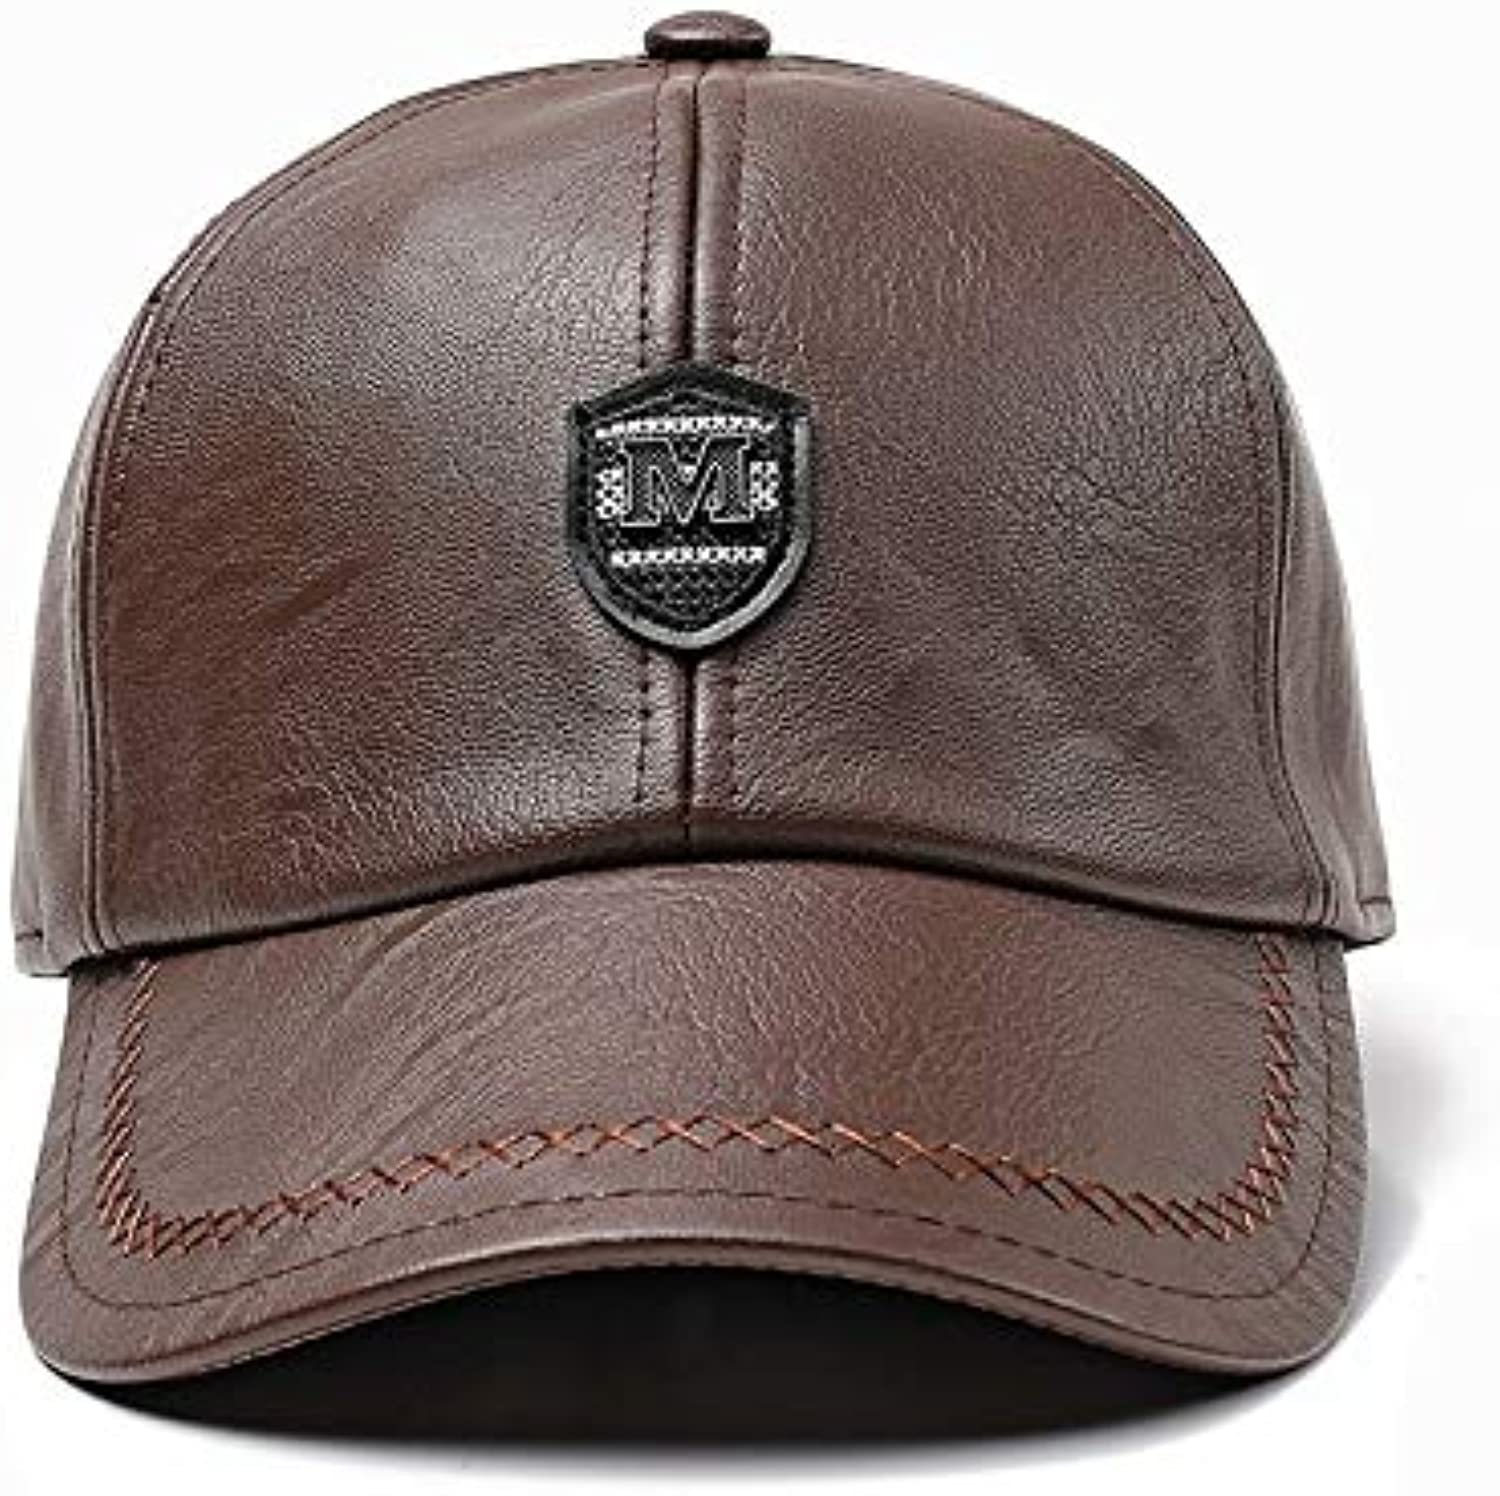 AAMOUSE Baseball Cap New Winter Leather Baseball Cap snap Back hat for Men Casual Baseball Cap Winter Dad Hat